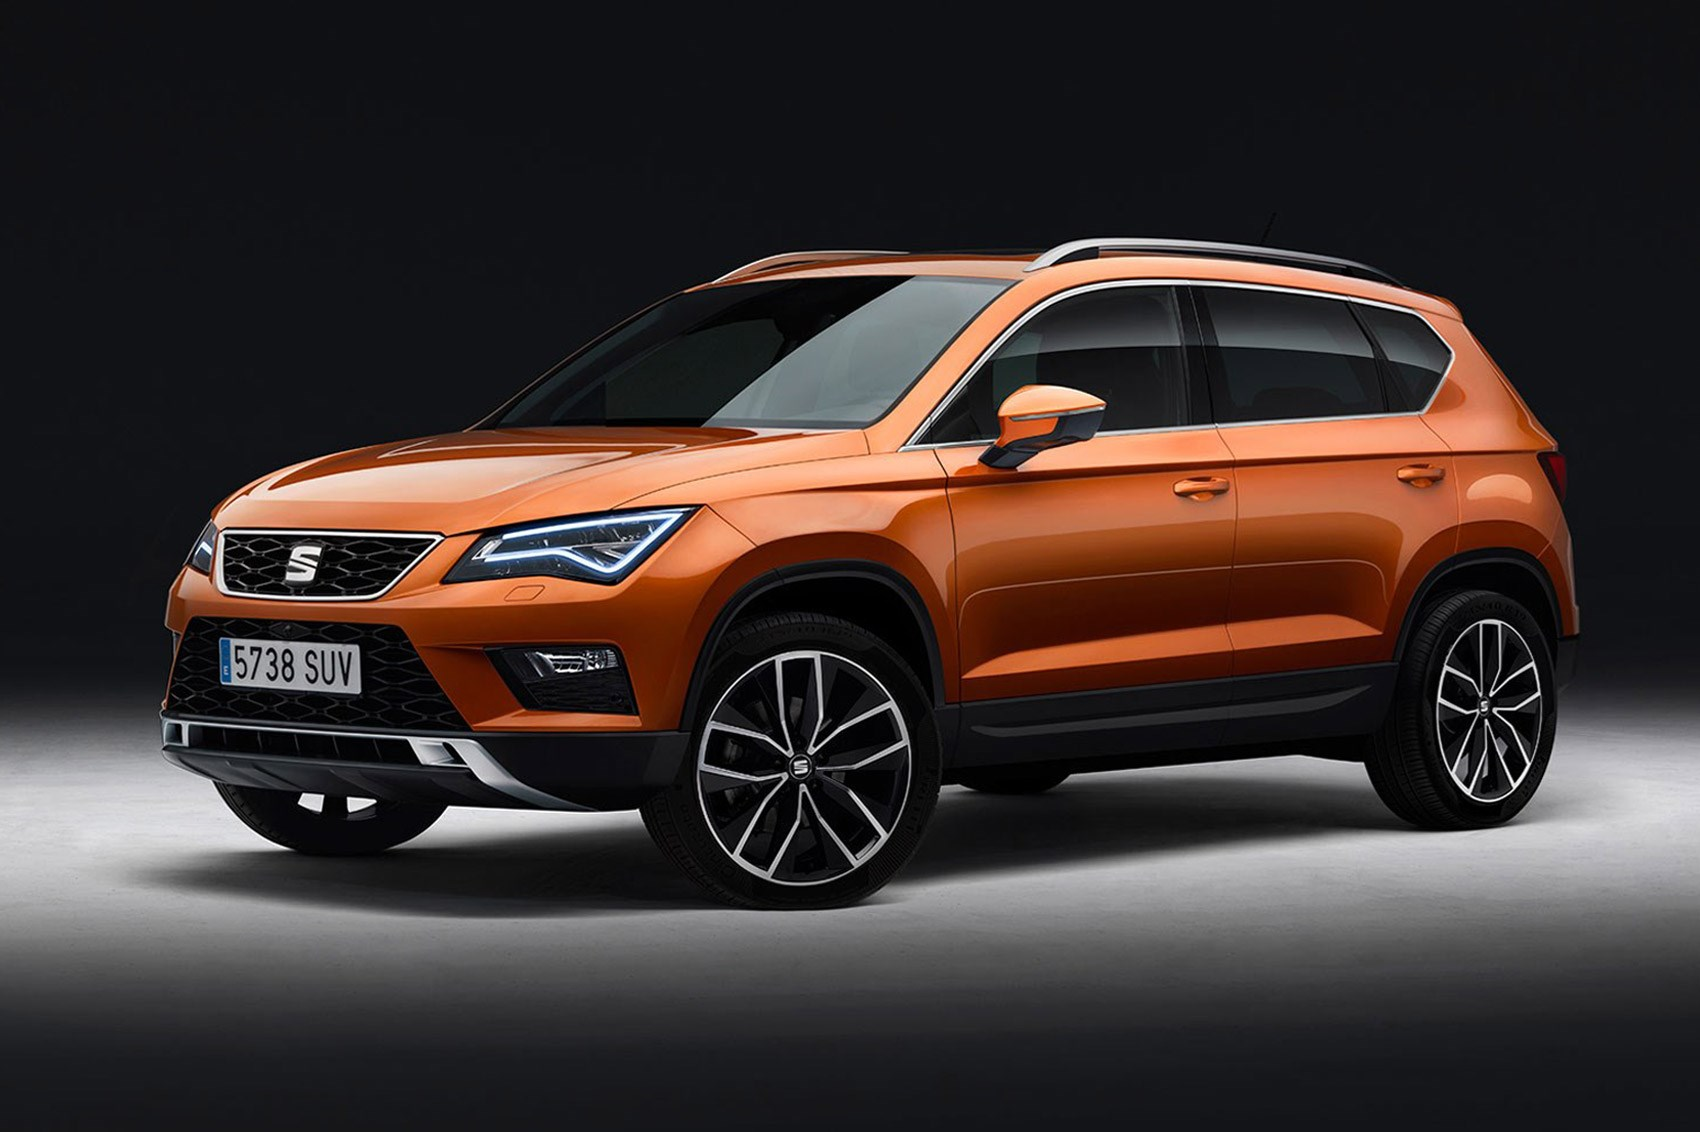 new seat ateca crossover in pictures spanish rival for qashqai suv by car magazine. Black Bedroom Furniture Sets. Home Design Ideas